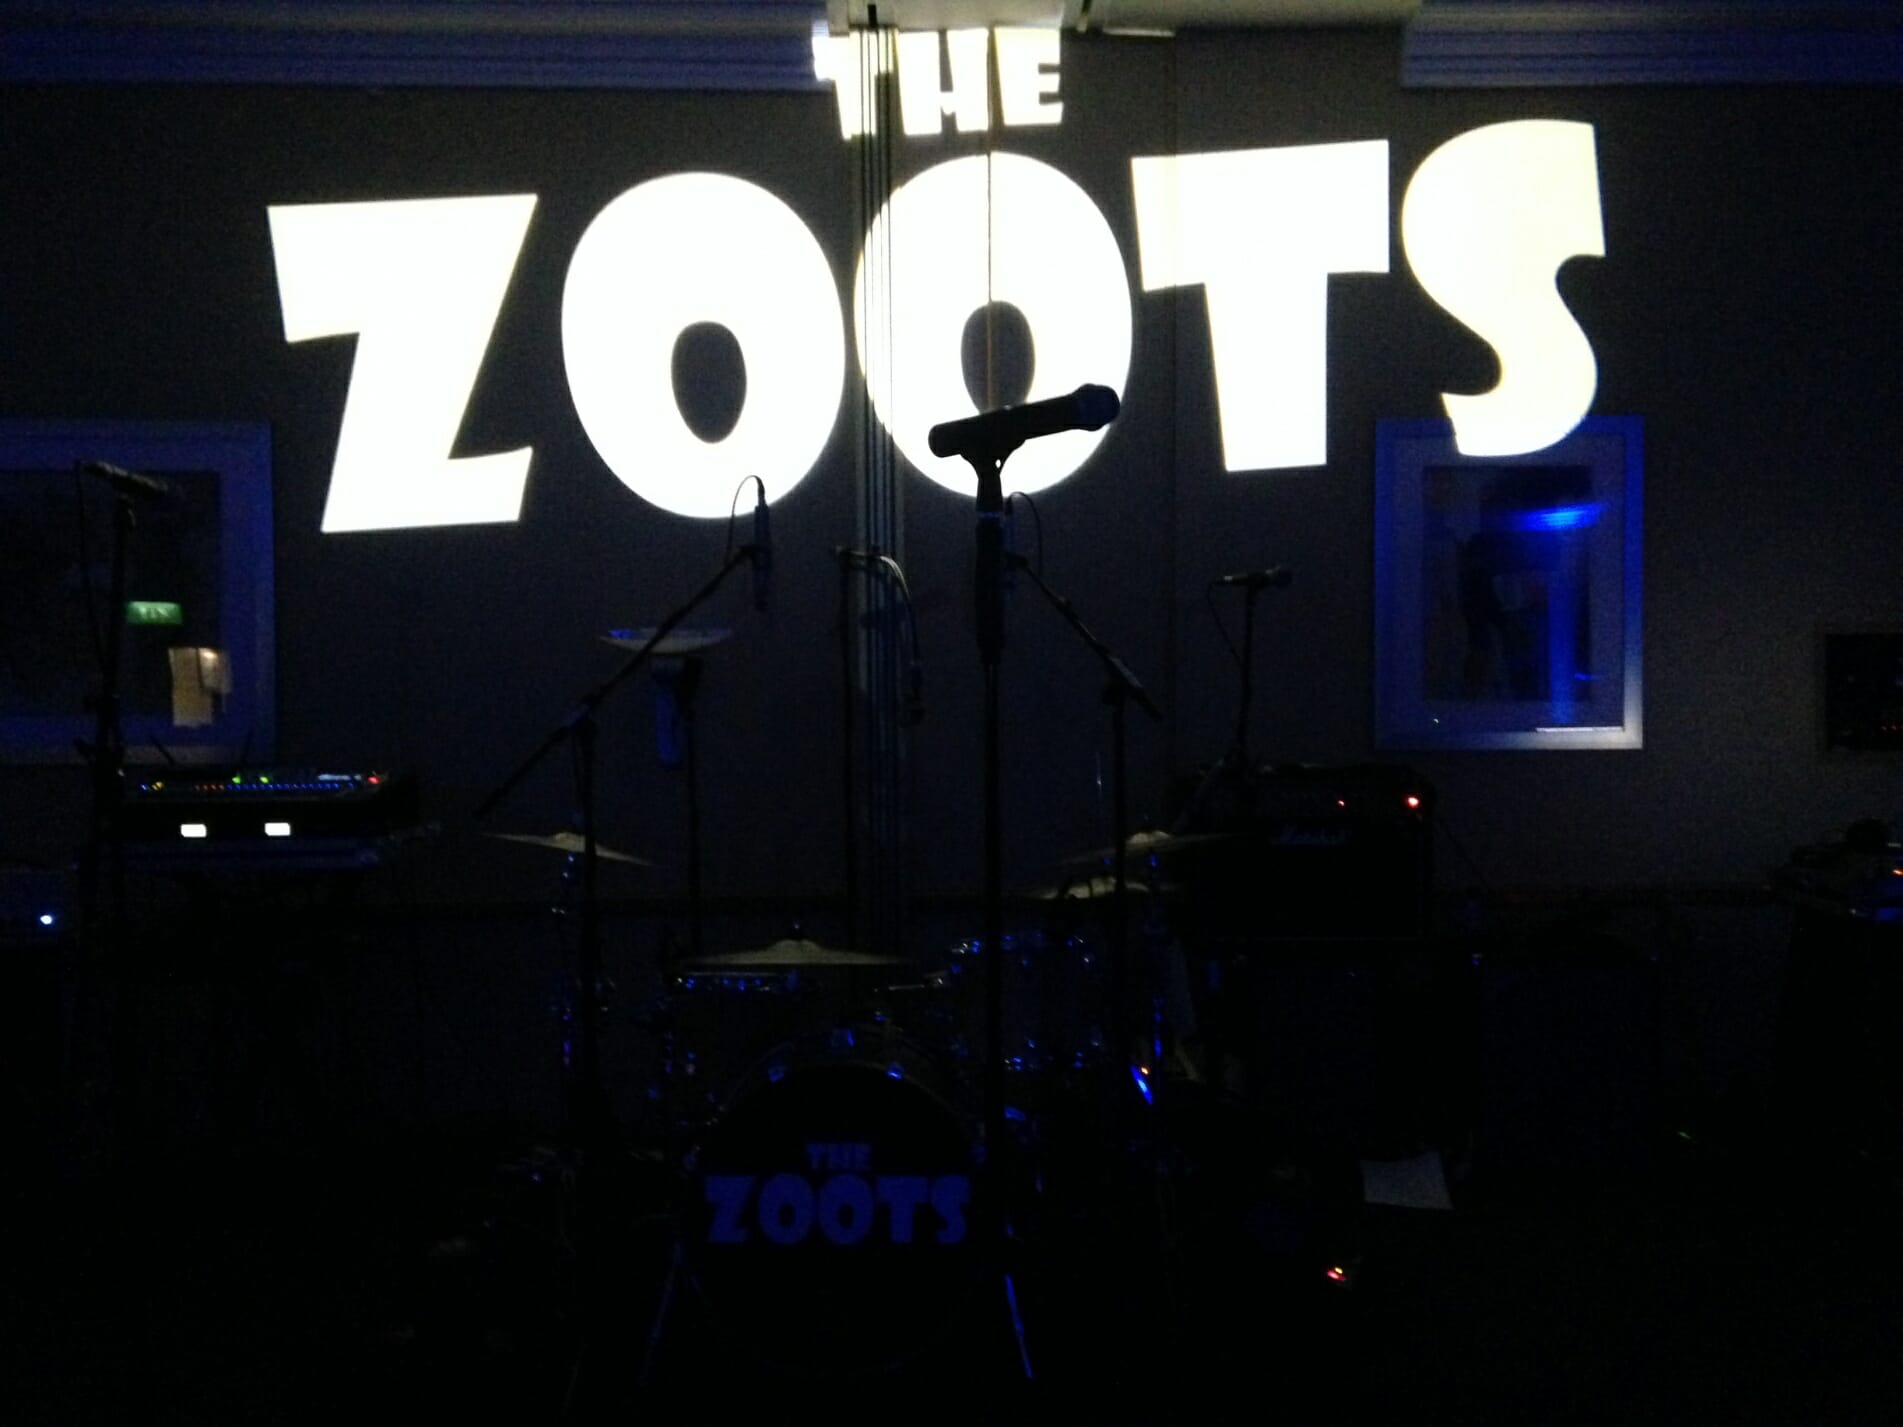 the zoots set up, band in swindon, party band swindon, party band for marriott swindon, band for marriet, band for marriott, marriot swindon, wedding band swindon,